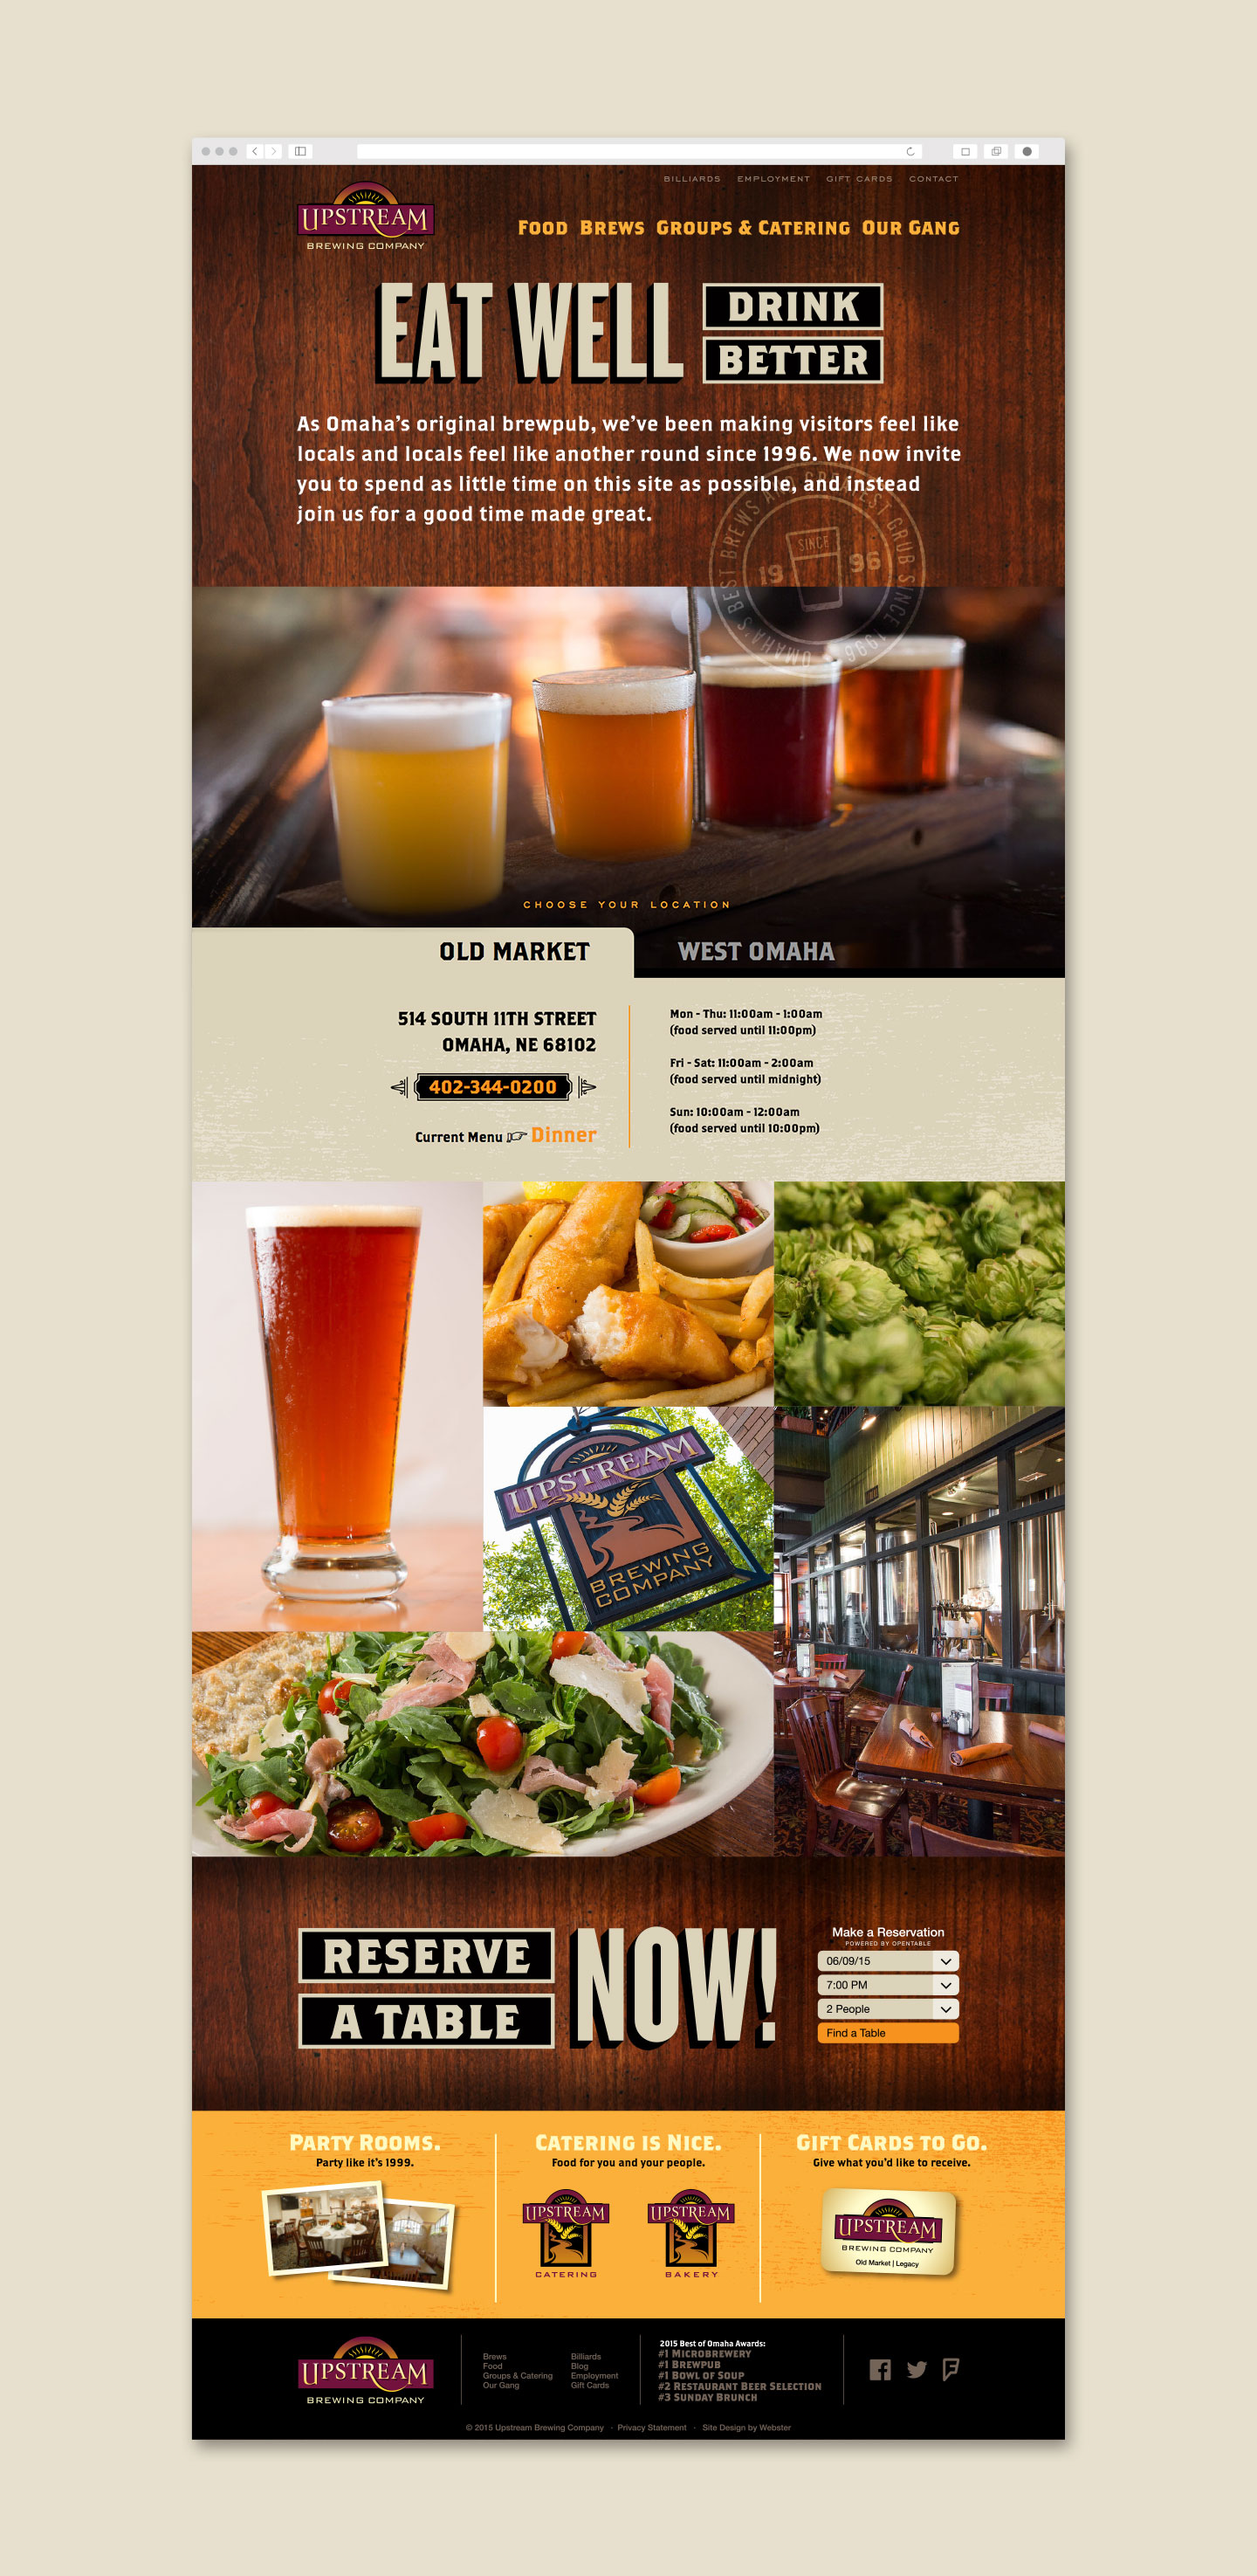 Upstream Brewing Homepage